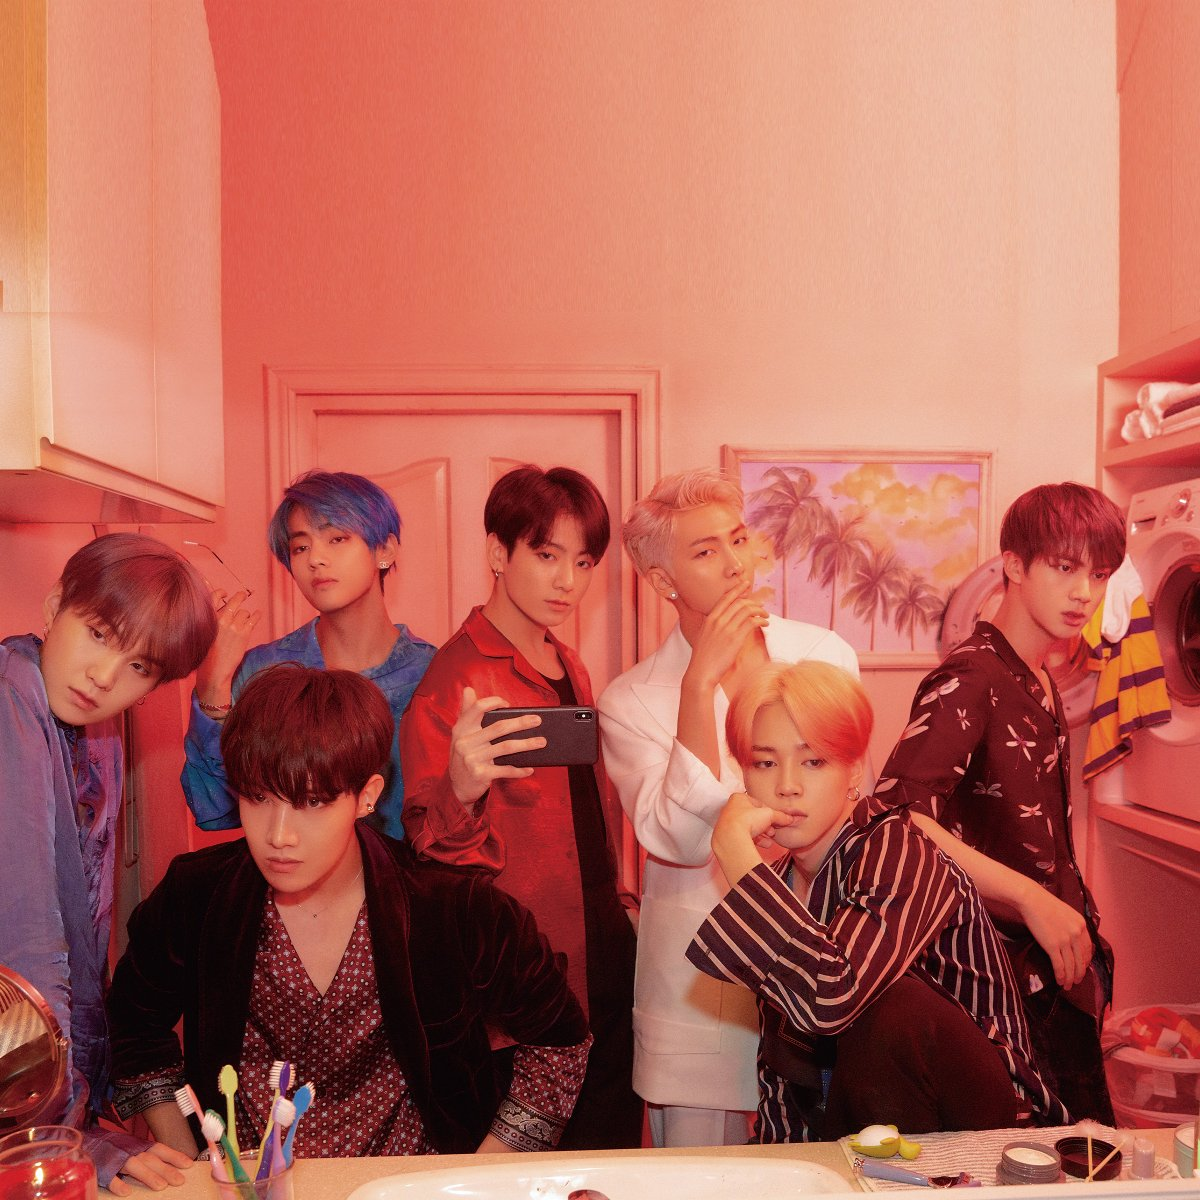 It's here! 📣 @bts_bighit's #MAP_OF_THE_SOUL_7 is streaming now. Listen to the album + the group's #NewMusicDaily conversation with @zanelowe right now on @AppleMusic.   #방탄소년단 #BTS #BTSARMY @BTS_twt